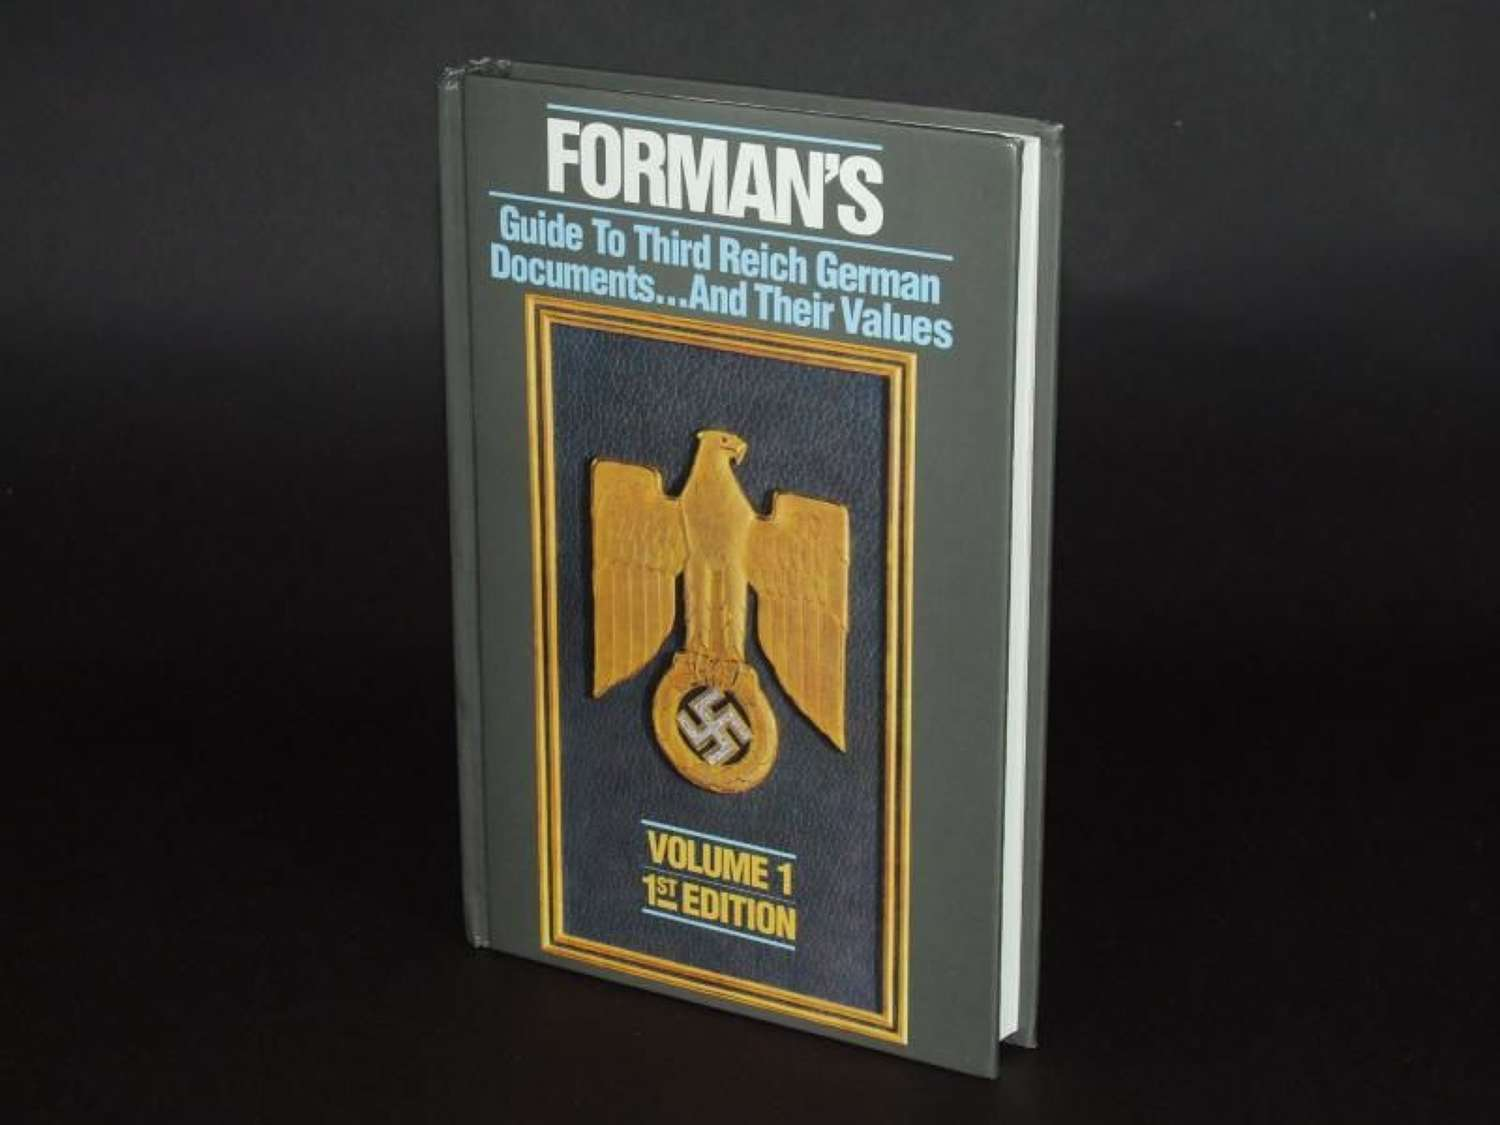 Forman's Guide to Third Reich German Documents.. and Their Values. Vol 1 First edition published by Roger